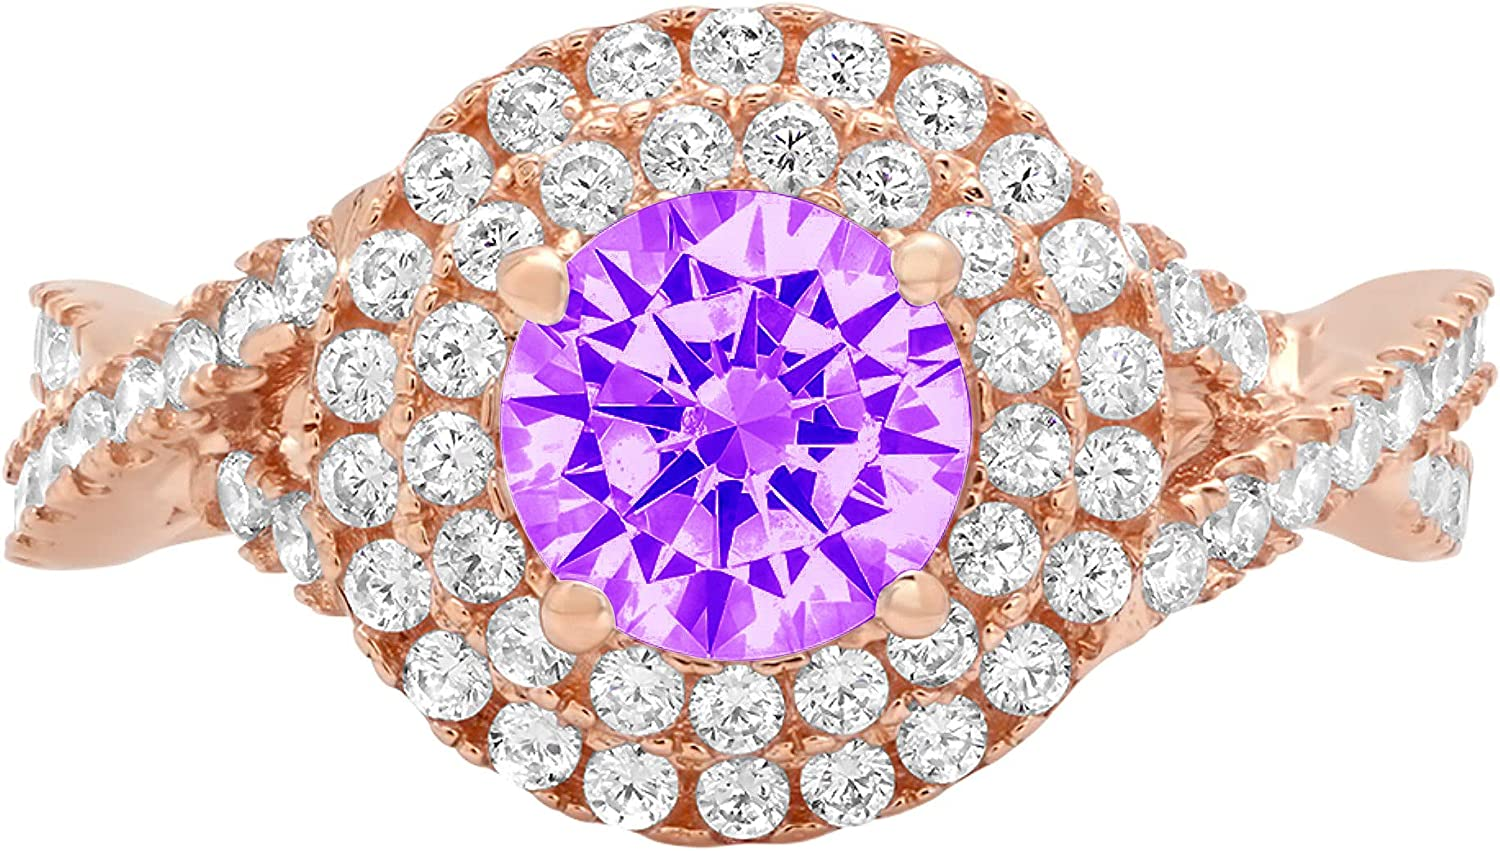 Clara Pucci 1.5 Brilliant Round Solitaire Outlet 67% OFF of fixed price ☆ Free Shipping Stunni halo Cut double